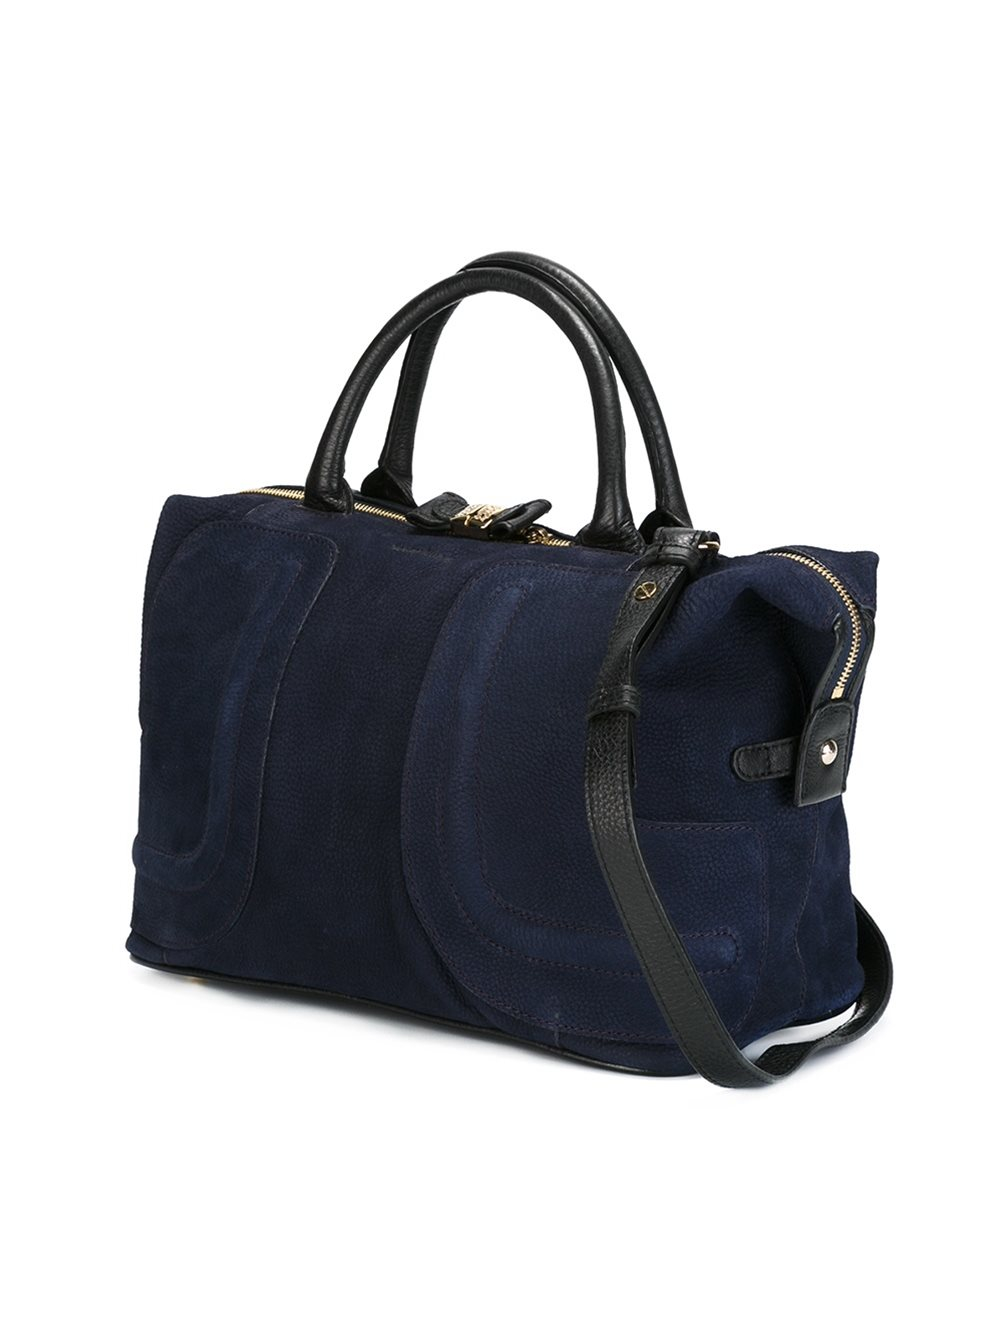 See By Chloé Leather See By Chloé 'kay' Tote in Blue